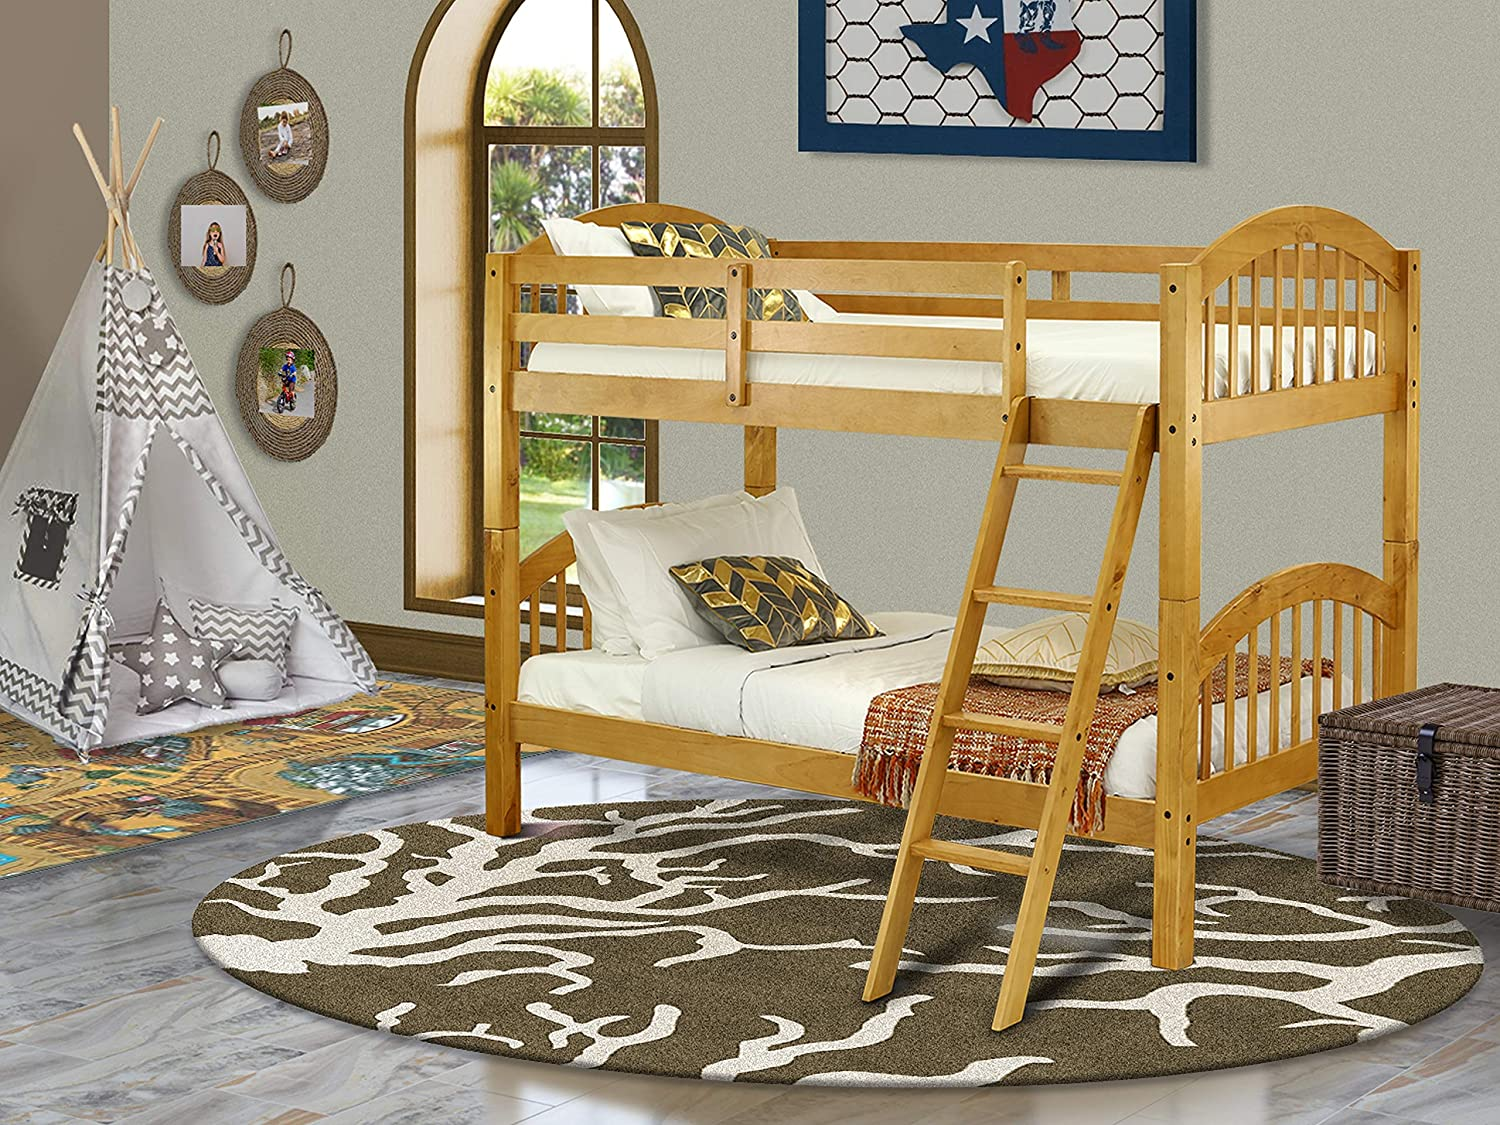 East West Furniture Real Wood Bunk Beds Twin with 4-Step Ladder and Safety Rail, Oak Finish